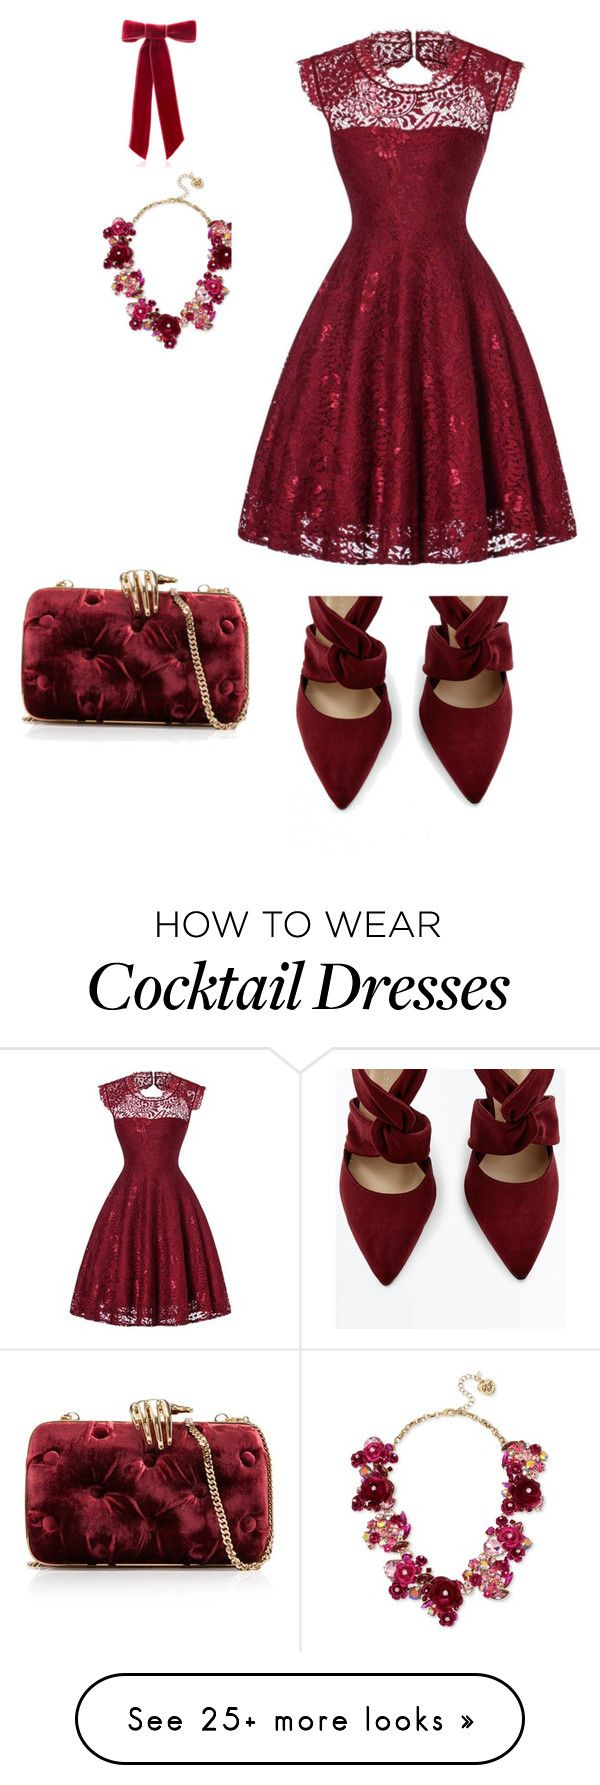 """Holiday style"" by bellissabeauty on Polyvore featuring Jennifer Behr, Betsey Johnson and Benedetta Bruzziches"